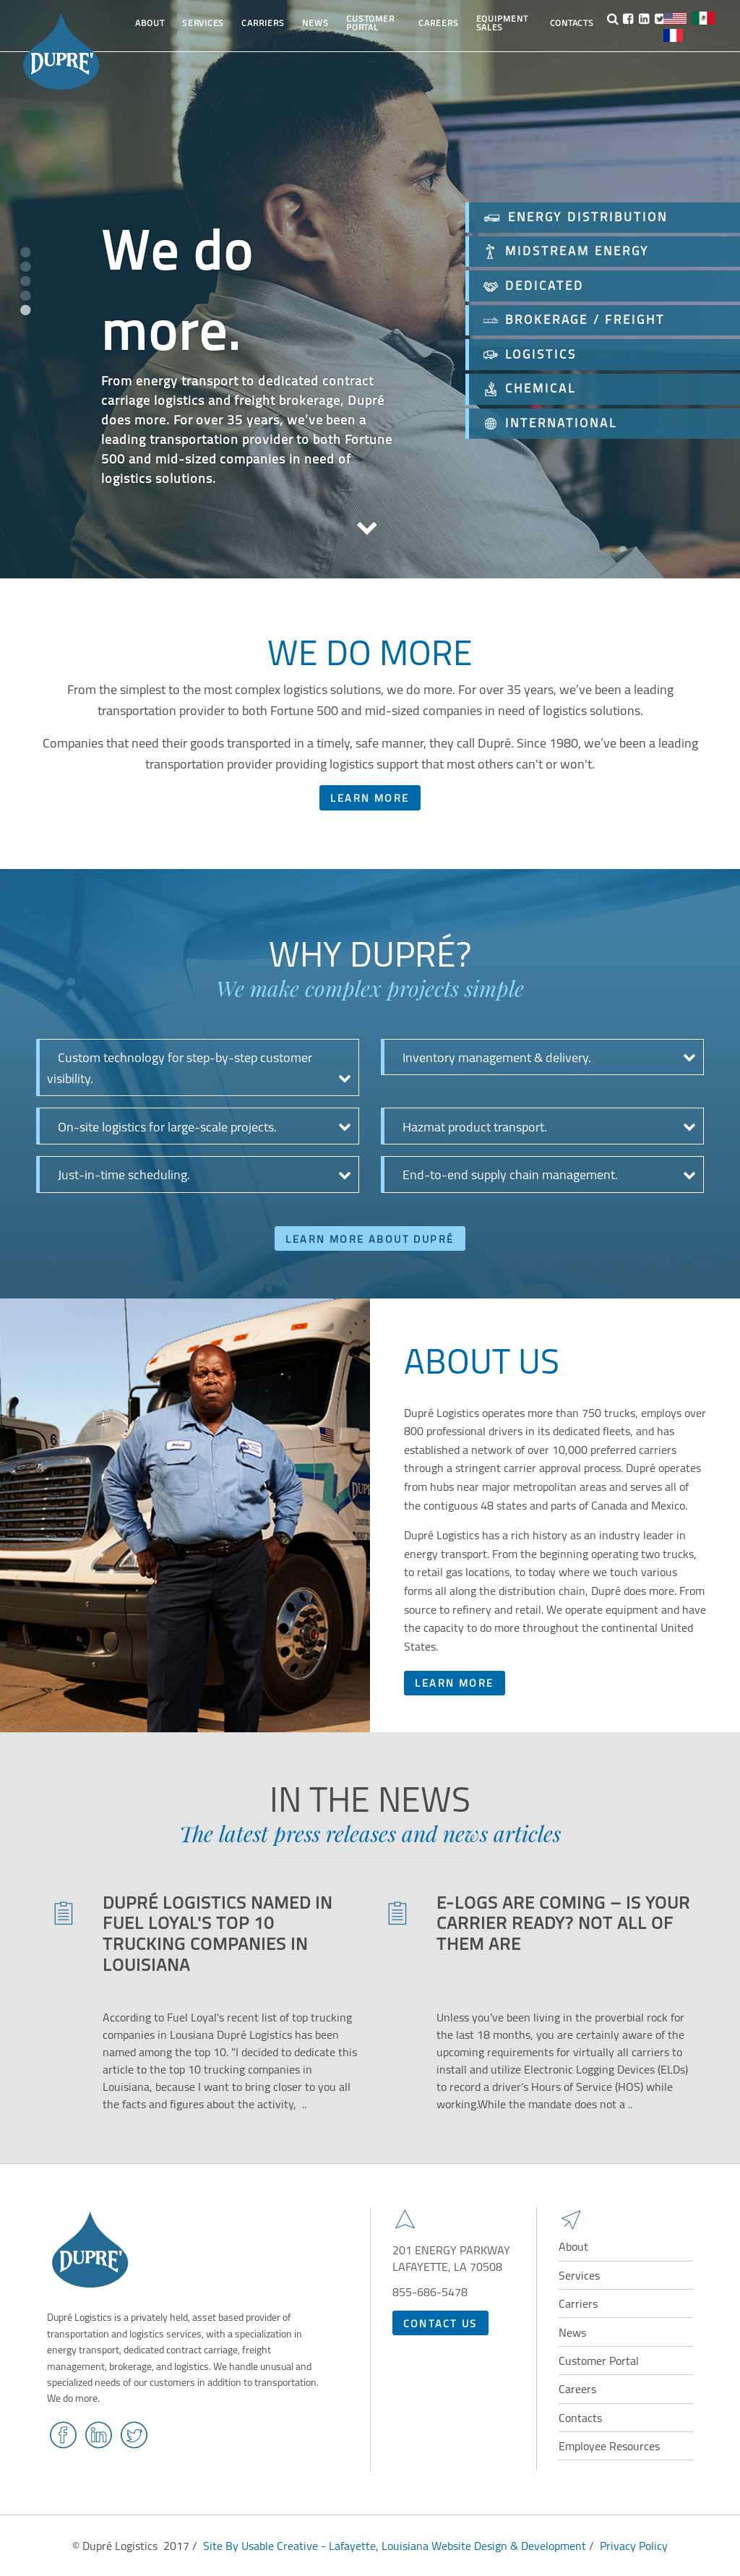 Dupre Logistics Competitors, Revenue and Employees - Owler